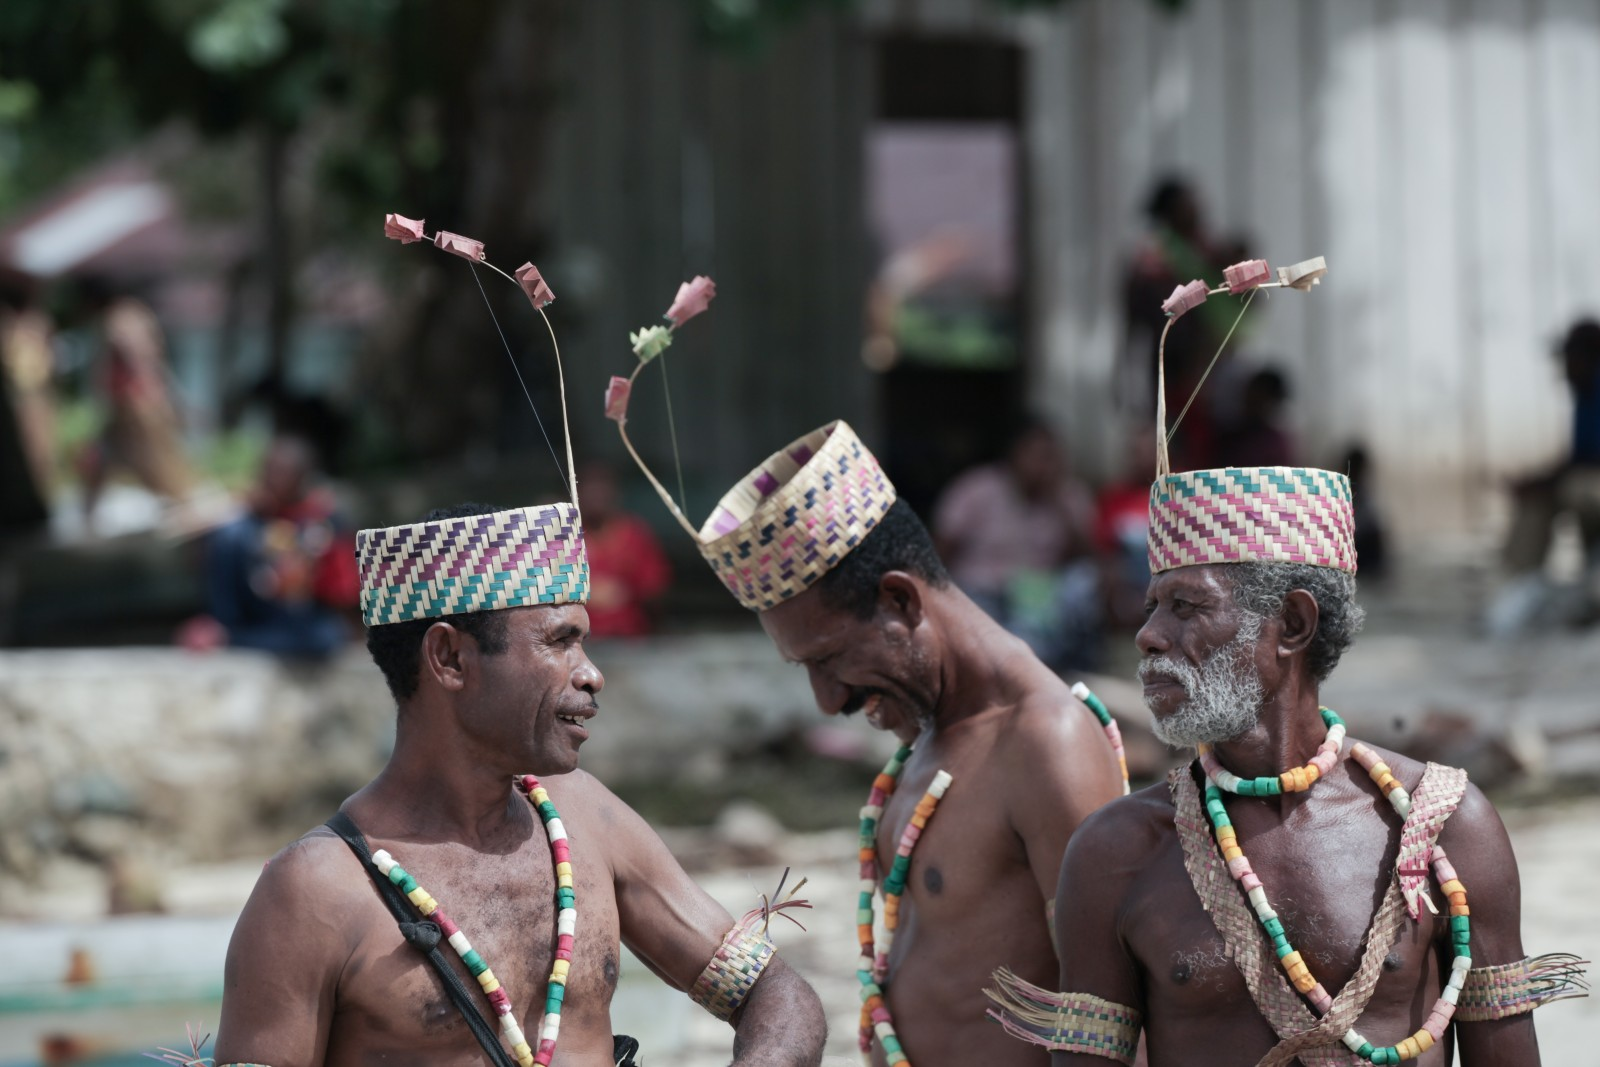 Local community decked out in traditional outfits